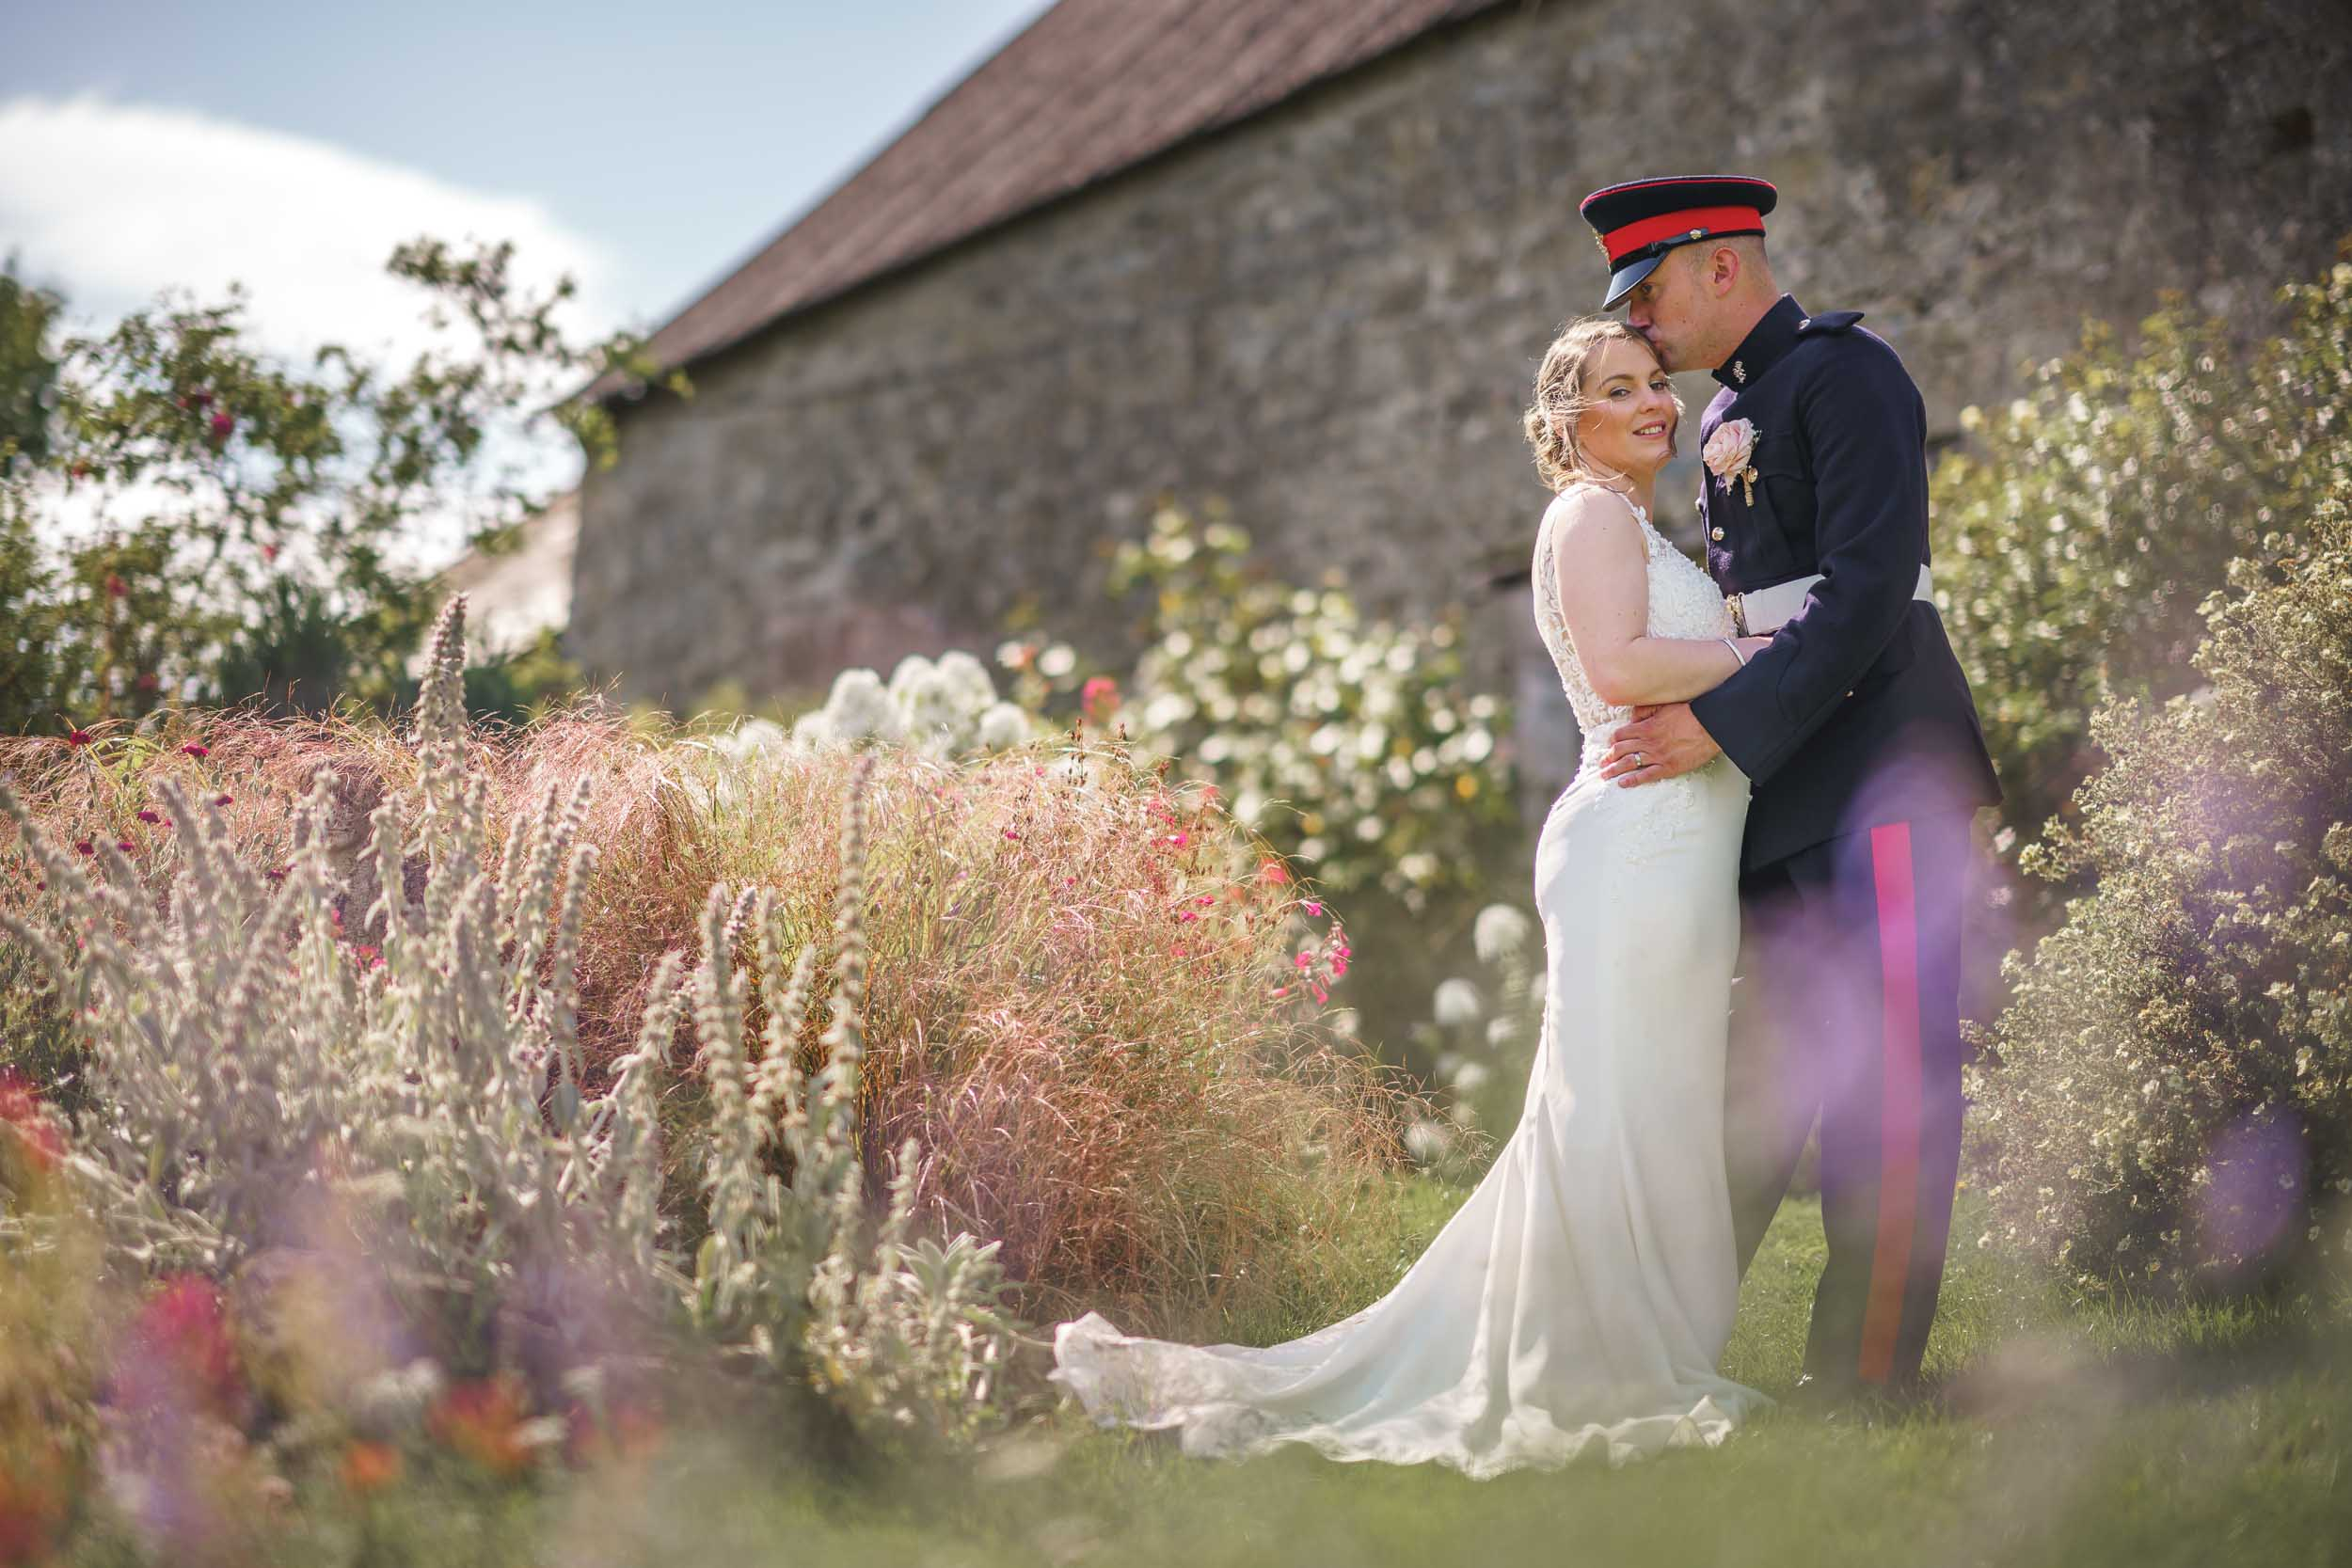 Upcote Barn Wedding Photography, Cotswolds wedding photographer, Wedding, Upcote Barn, Cotswolds, Photographer